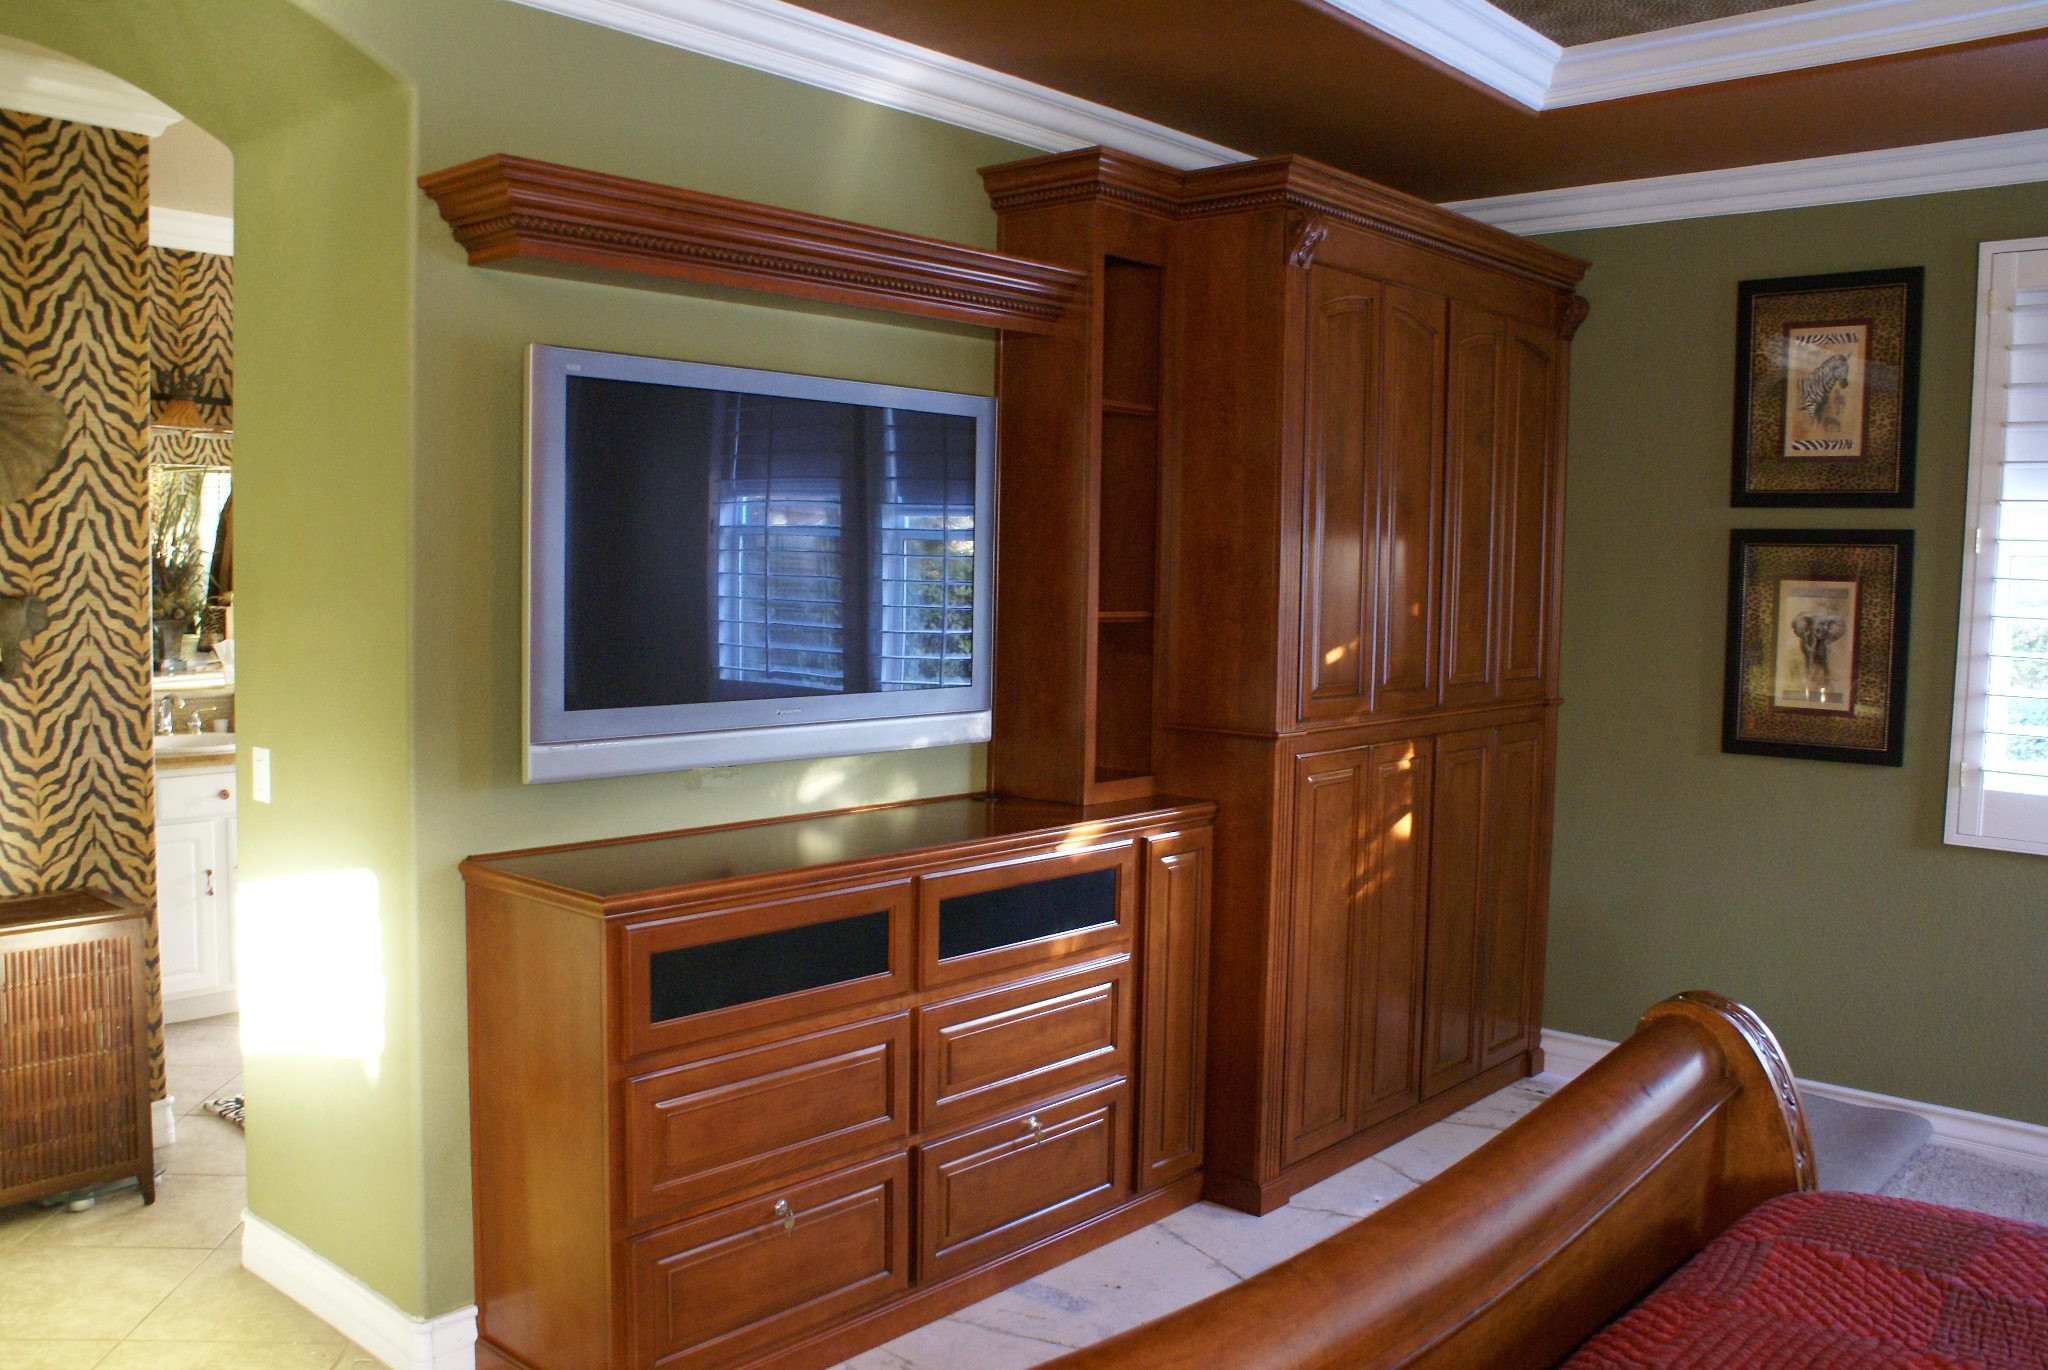 Bedroom Wall Storage Cabinets  Bedroom cabinets • Platinum Cabinetry in Las Vegas Nevada